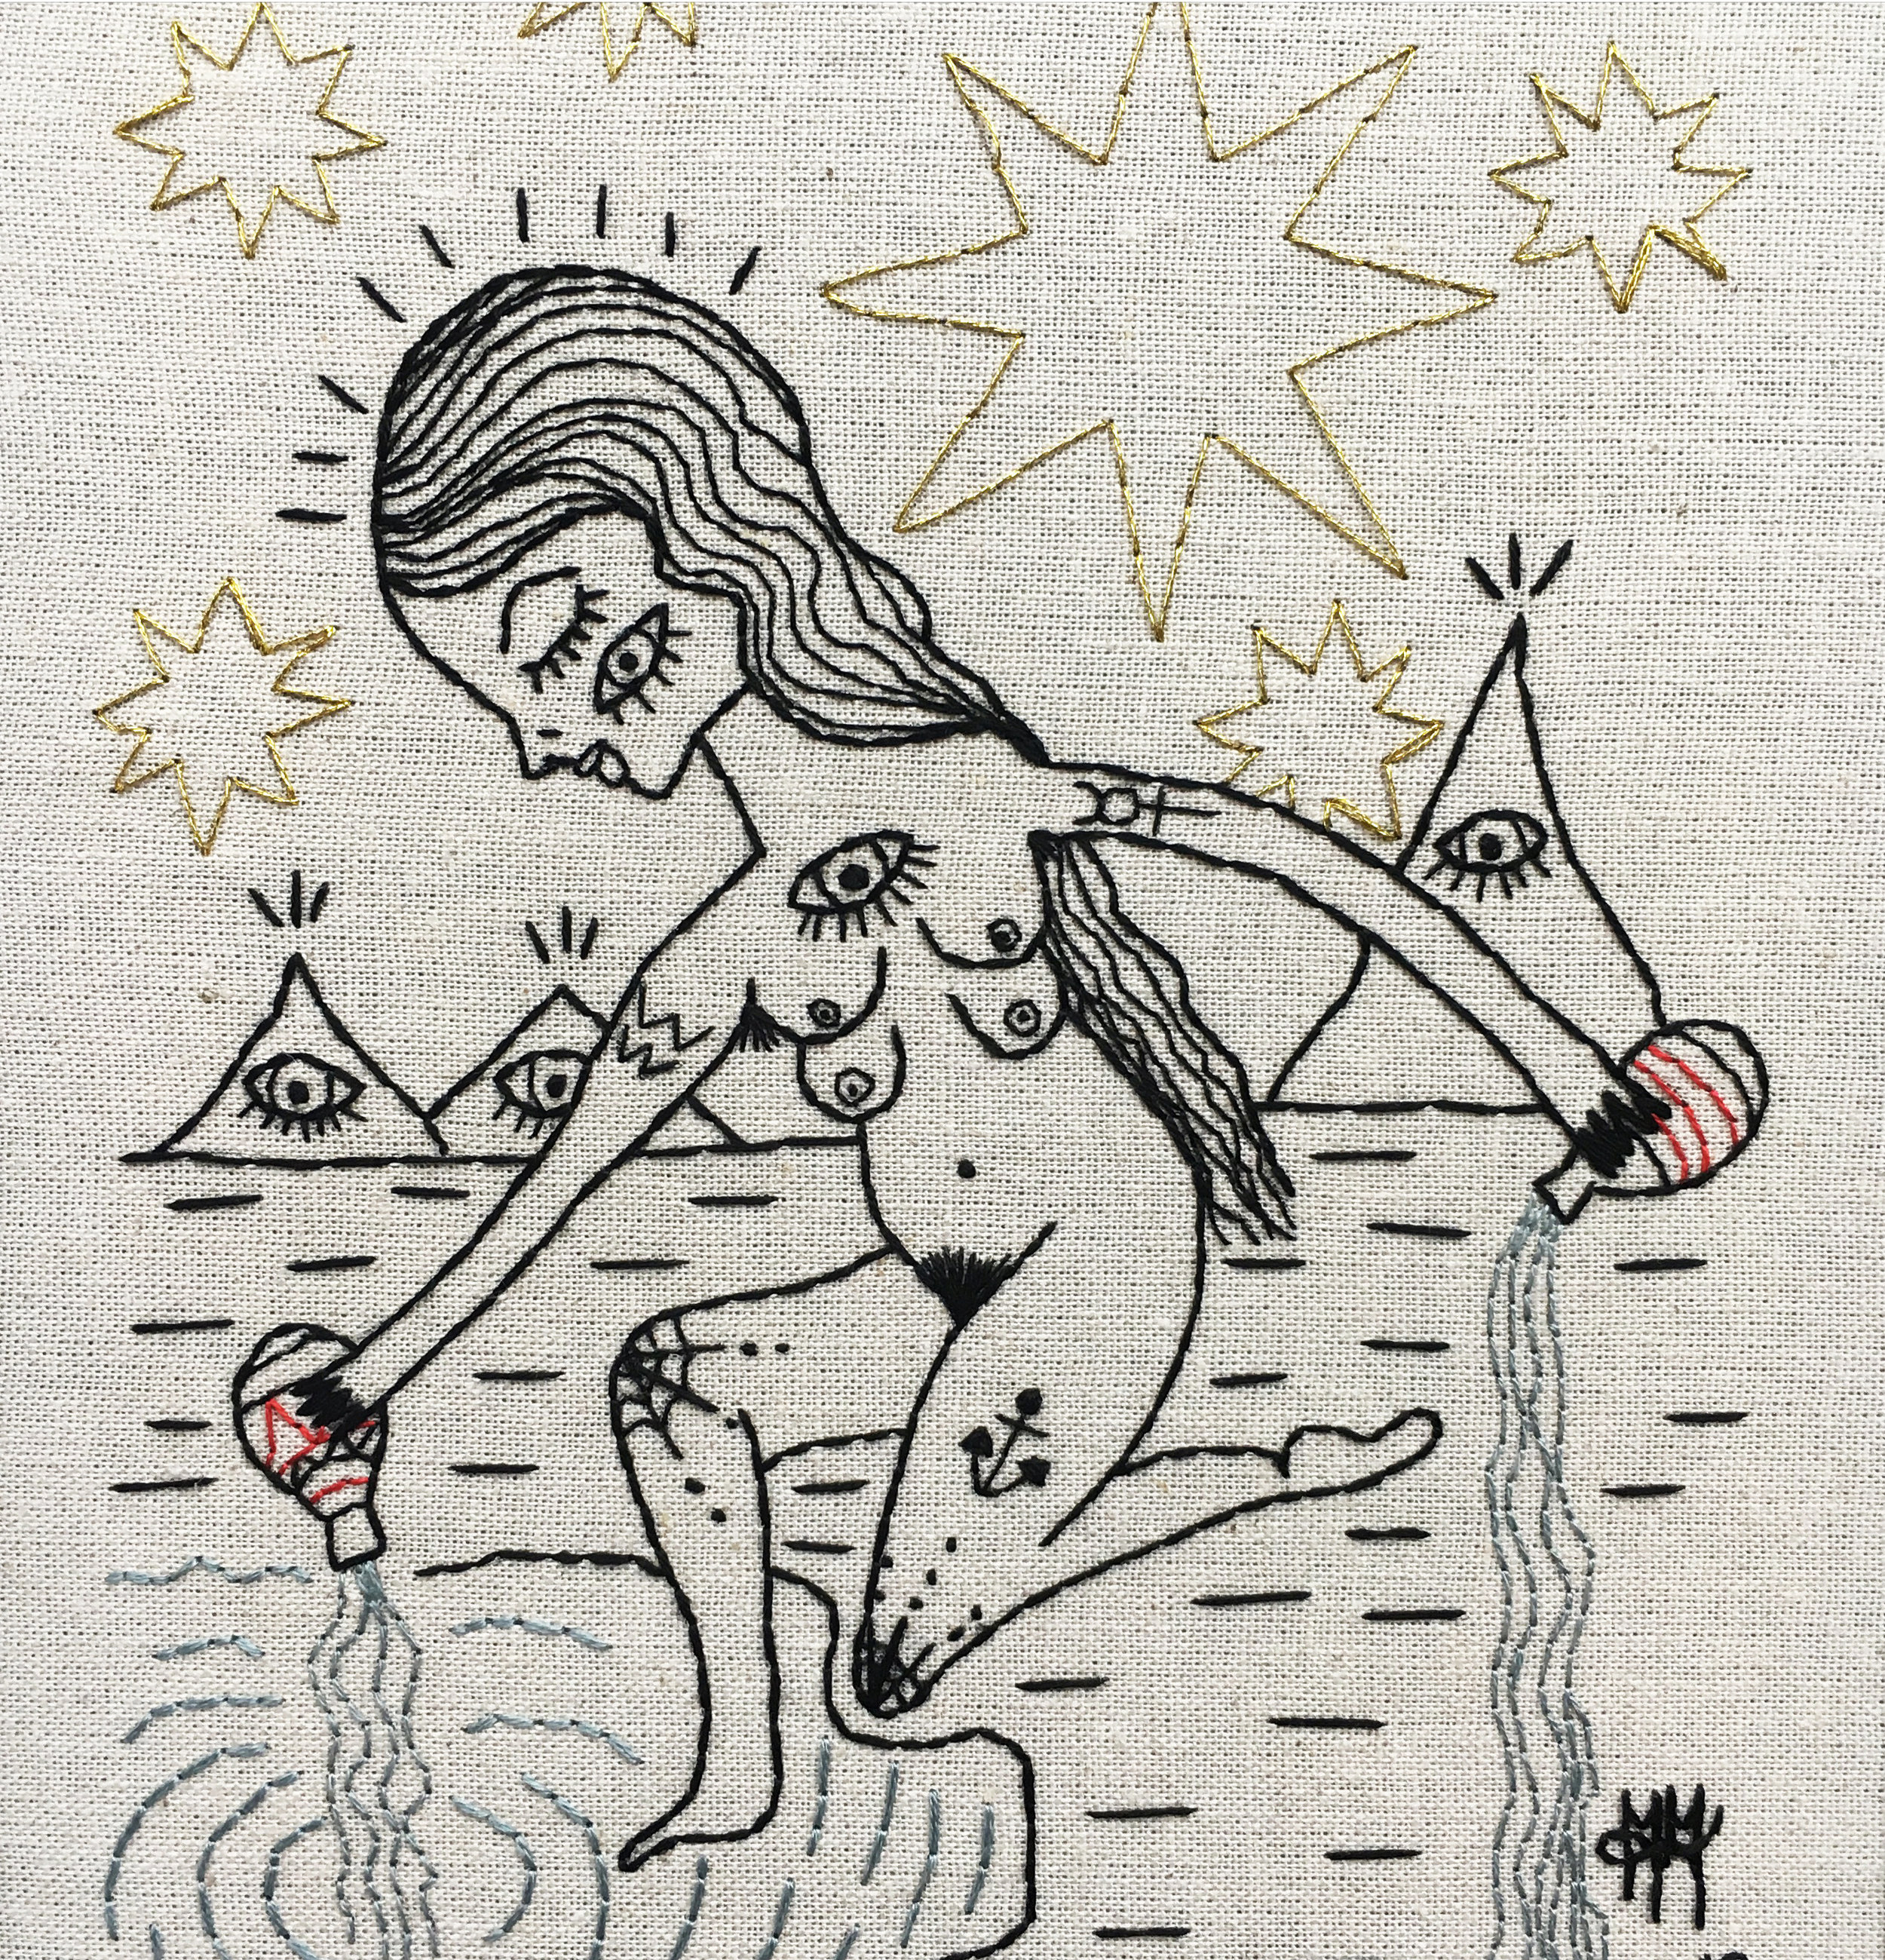 'Of The Tarot' Embroidery Exhibition